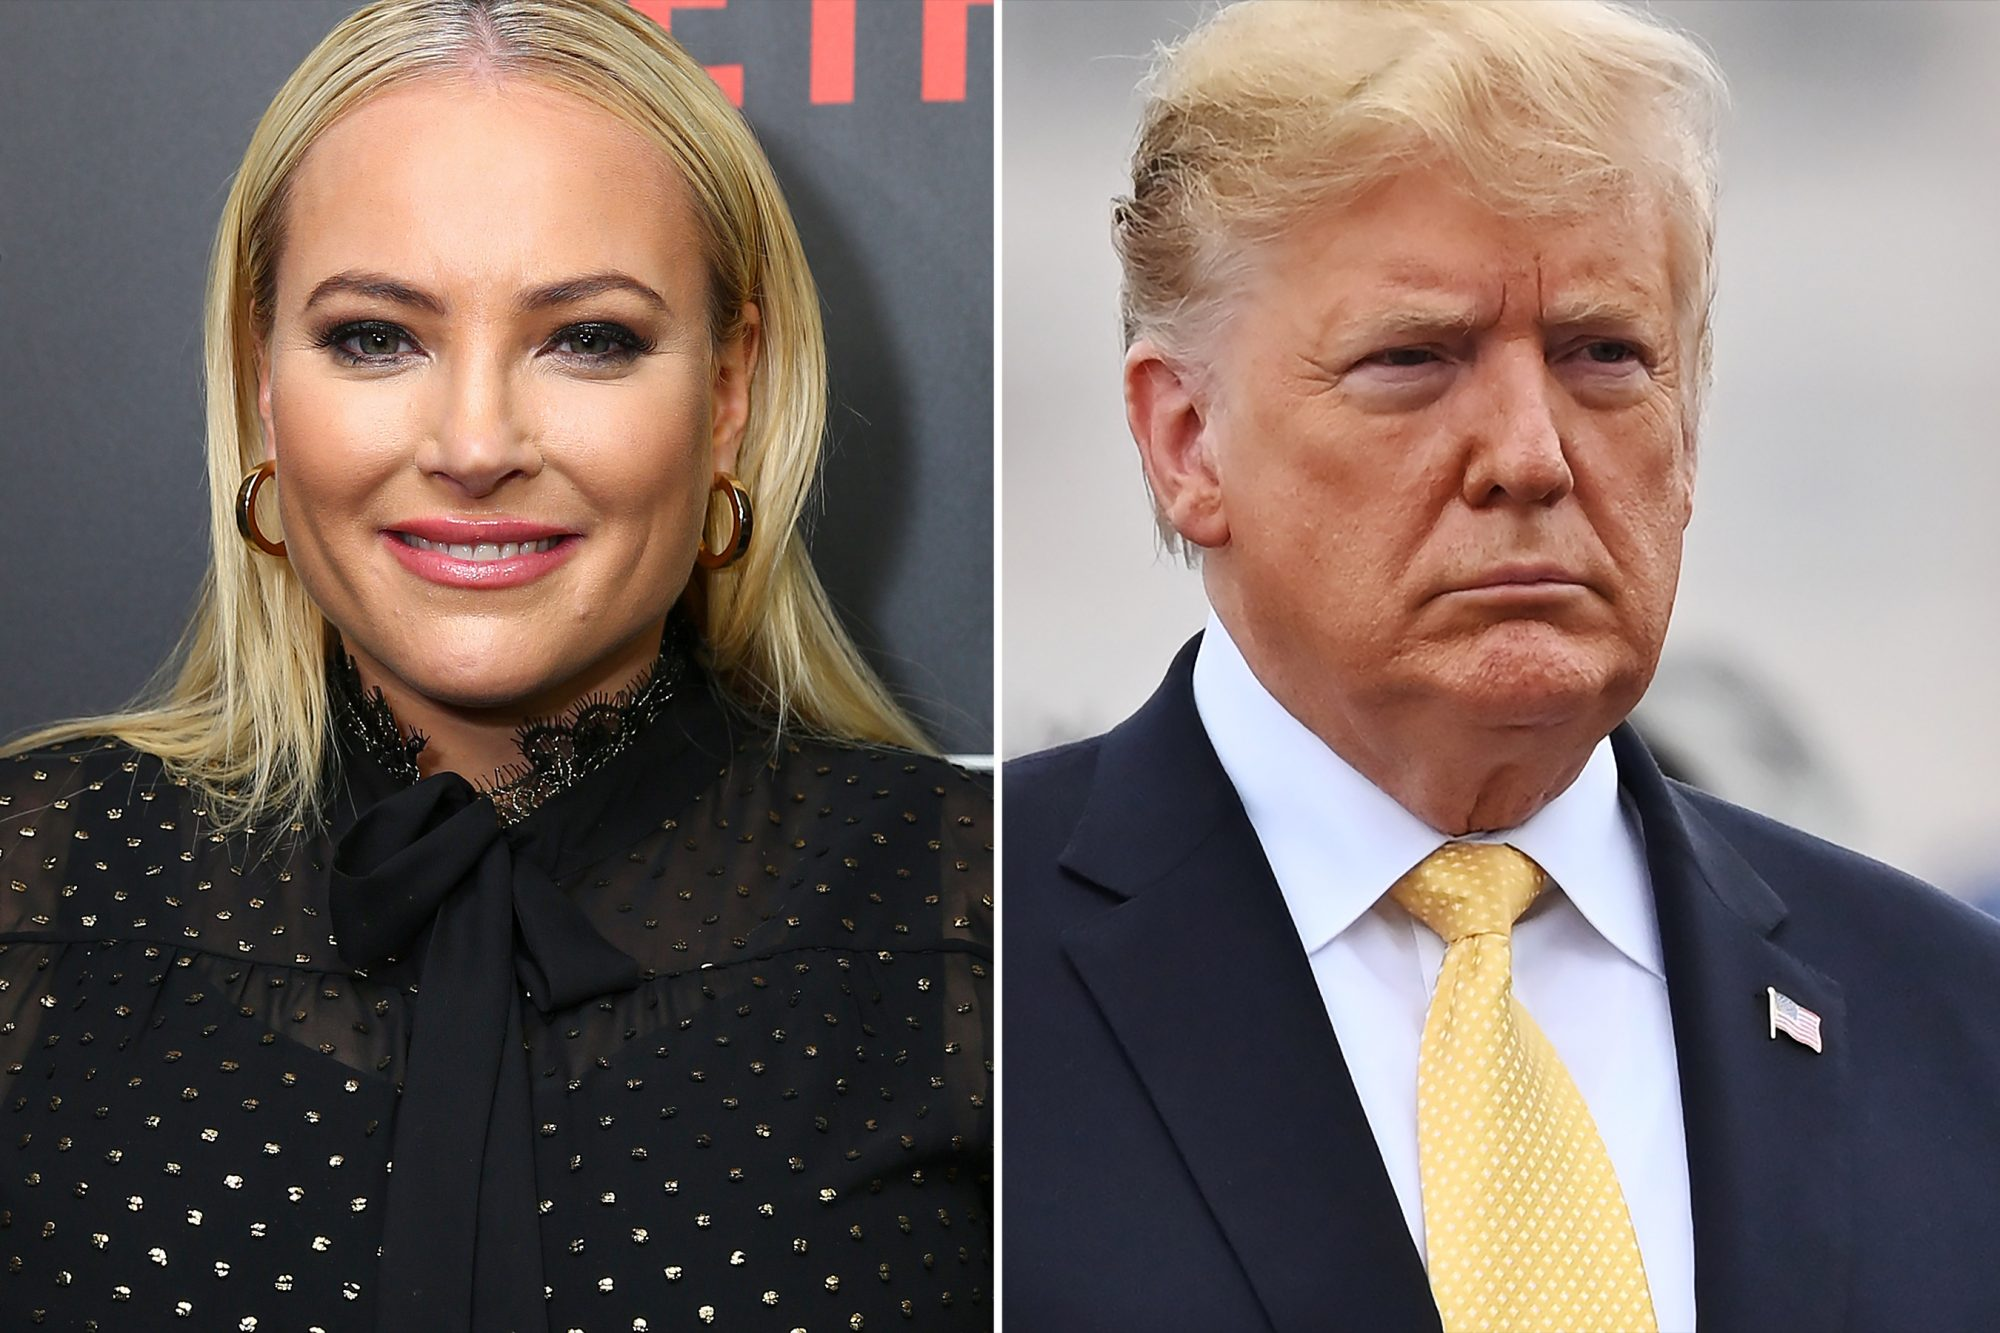 Meghan McCain Slams 'Vile' Donald Trump For Allegedly Calling Fallen Soldiers 'Losers'